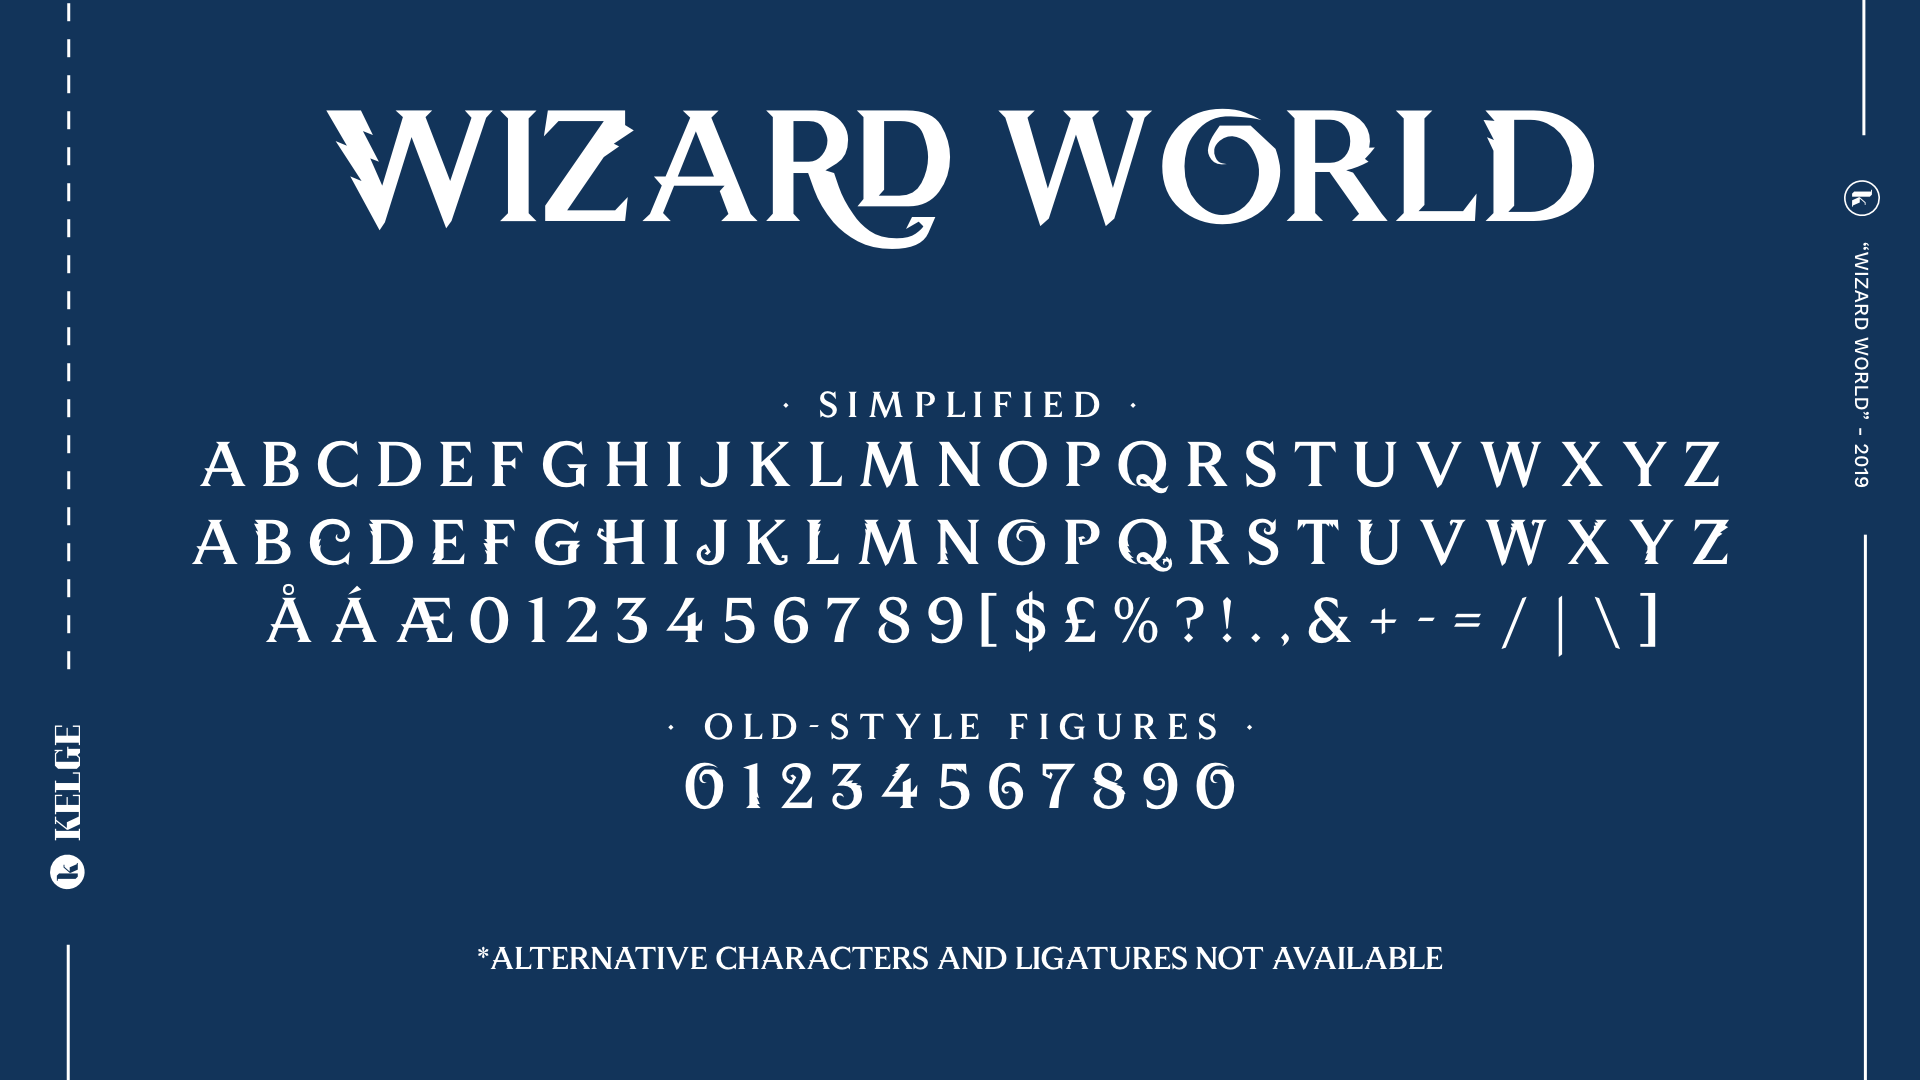 Wizard World Font - FontSpace